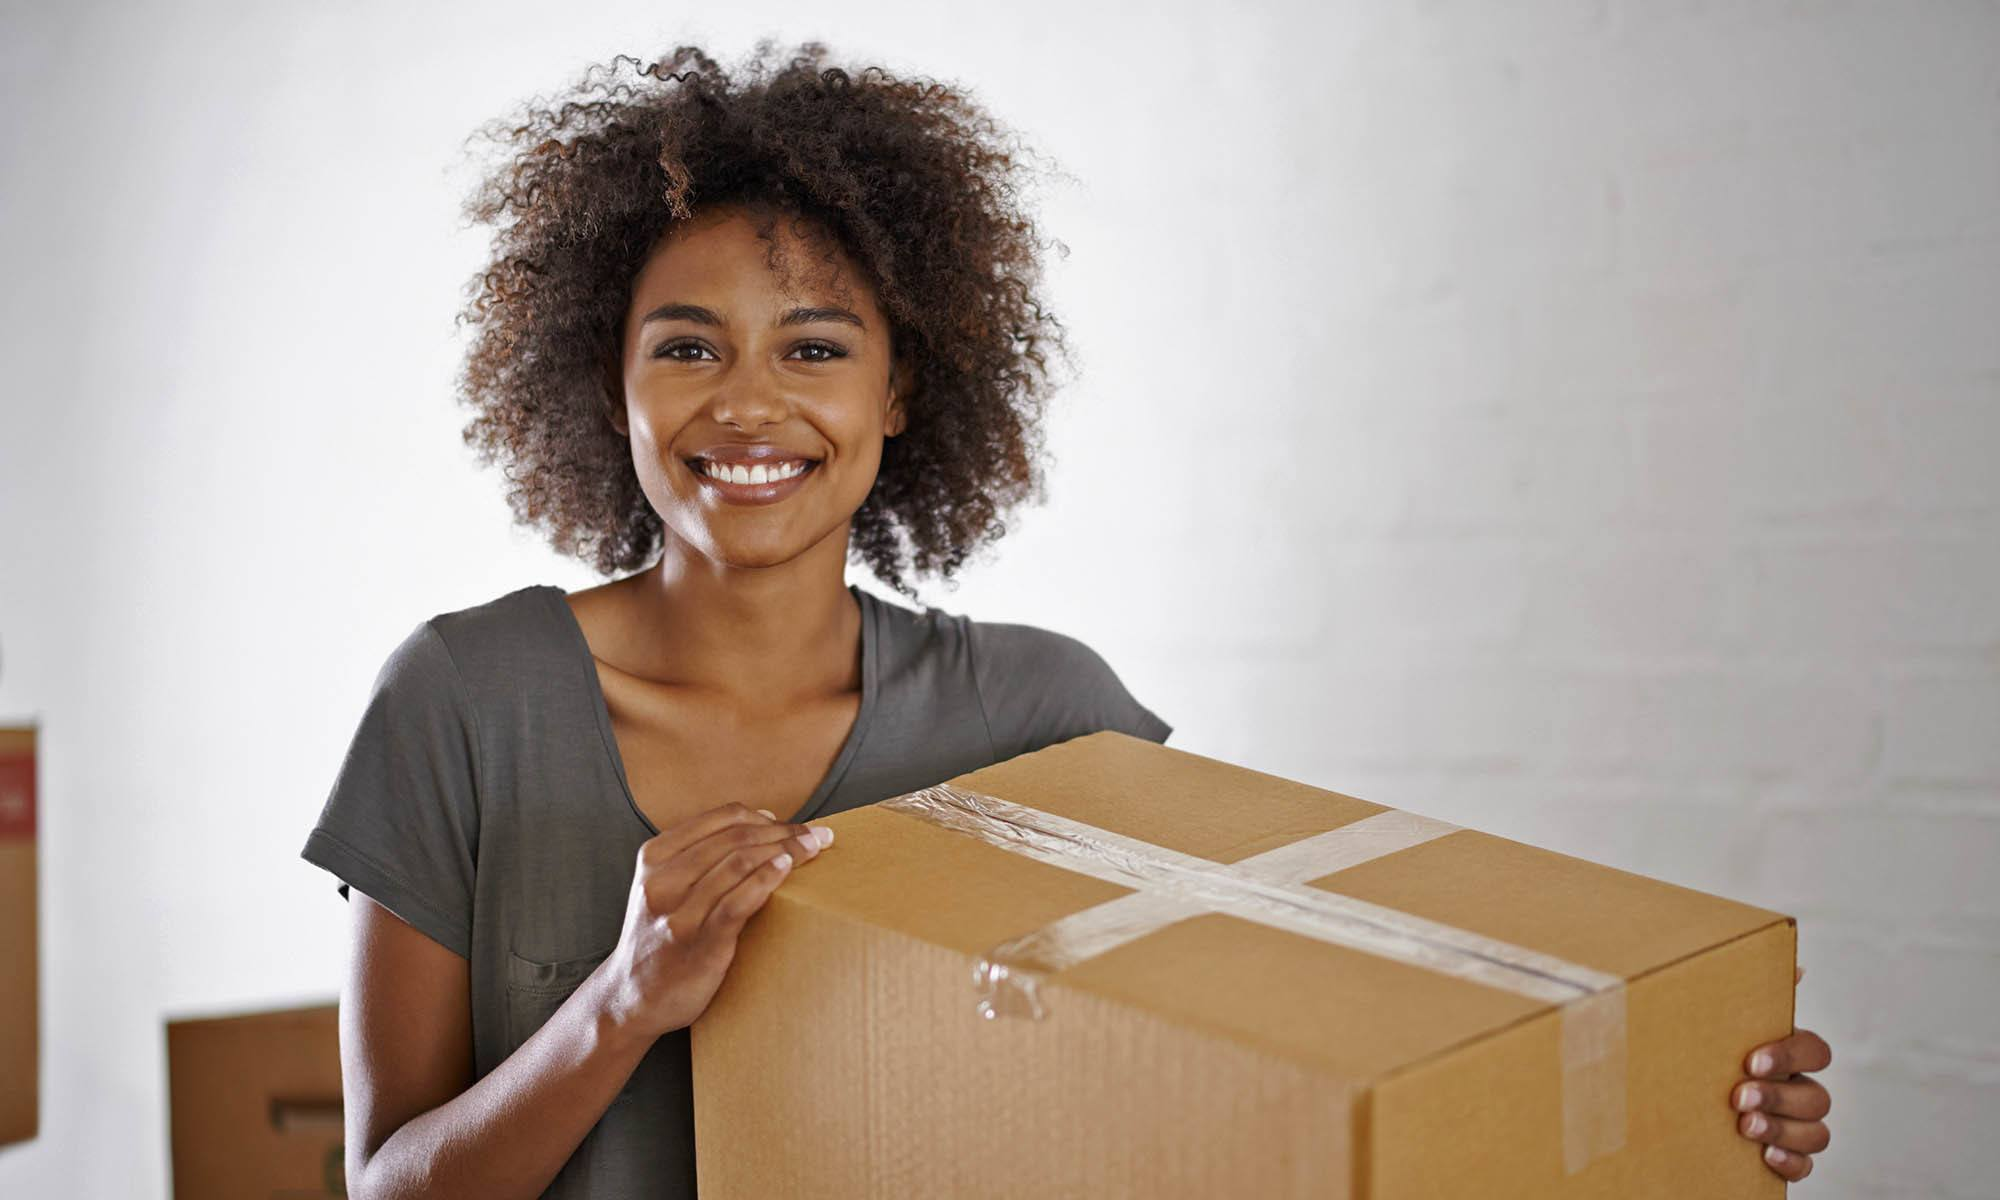 Woman packing boxes for storage at First Rate Storage in San Leandro, CA